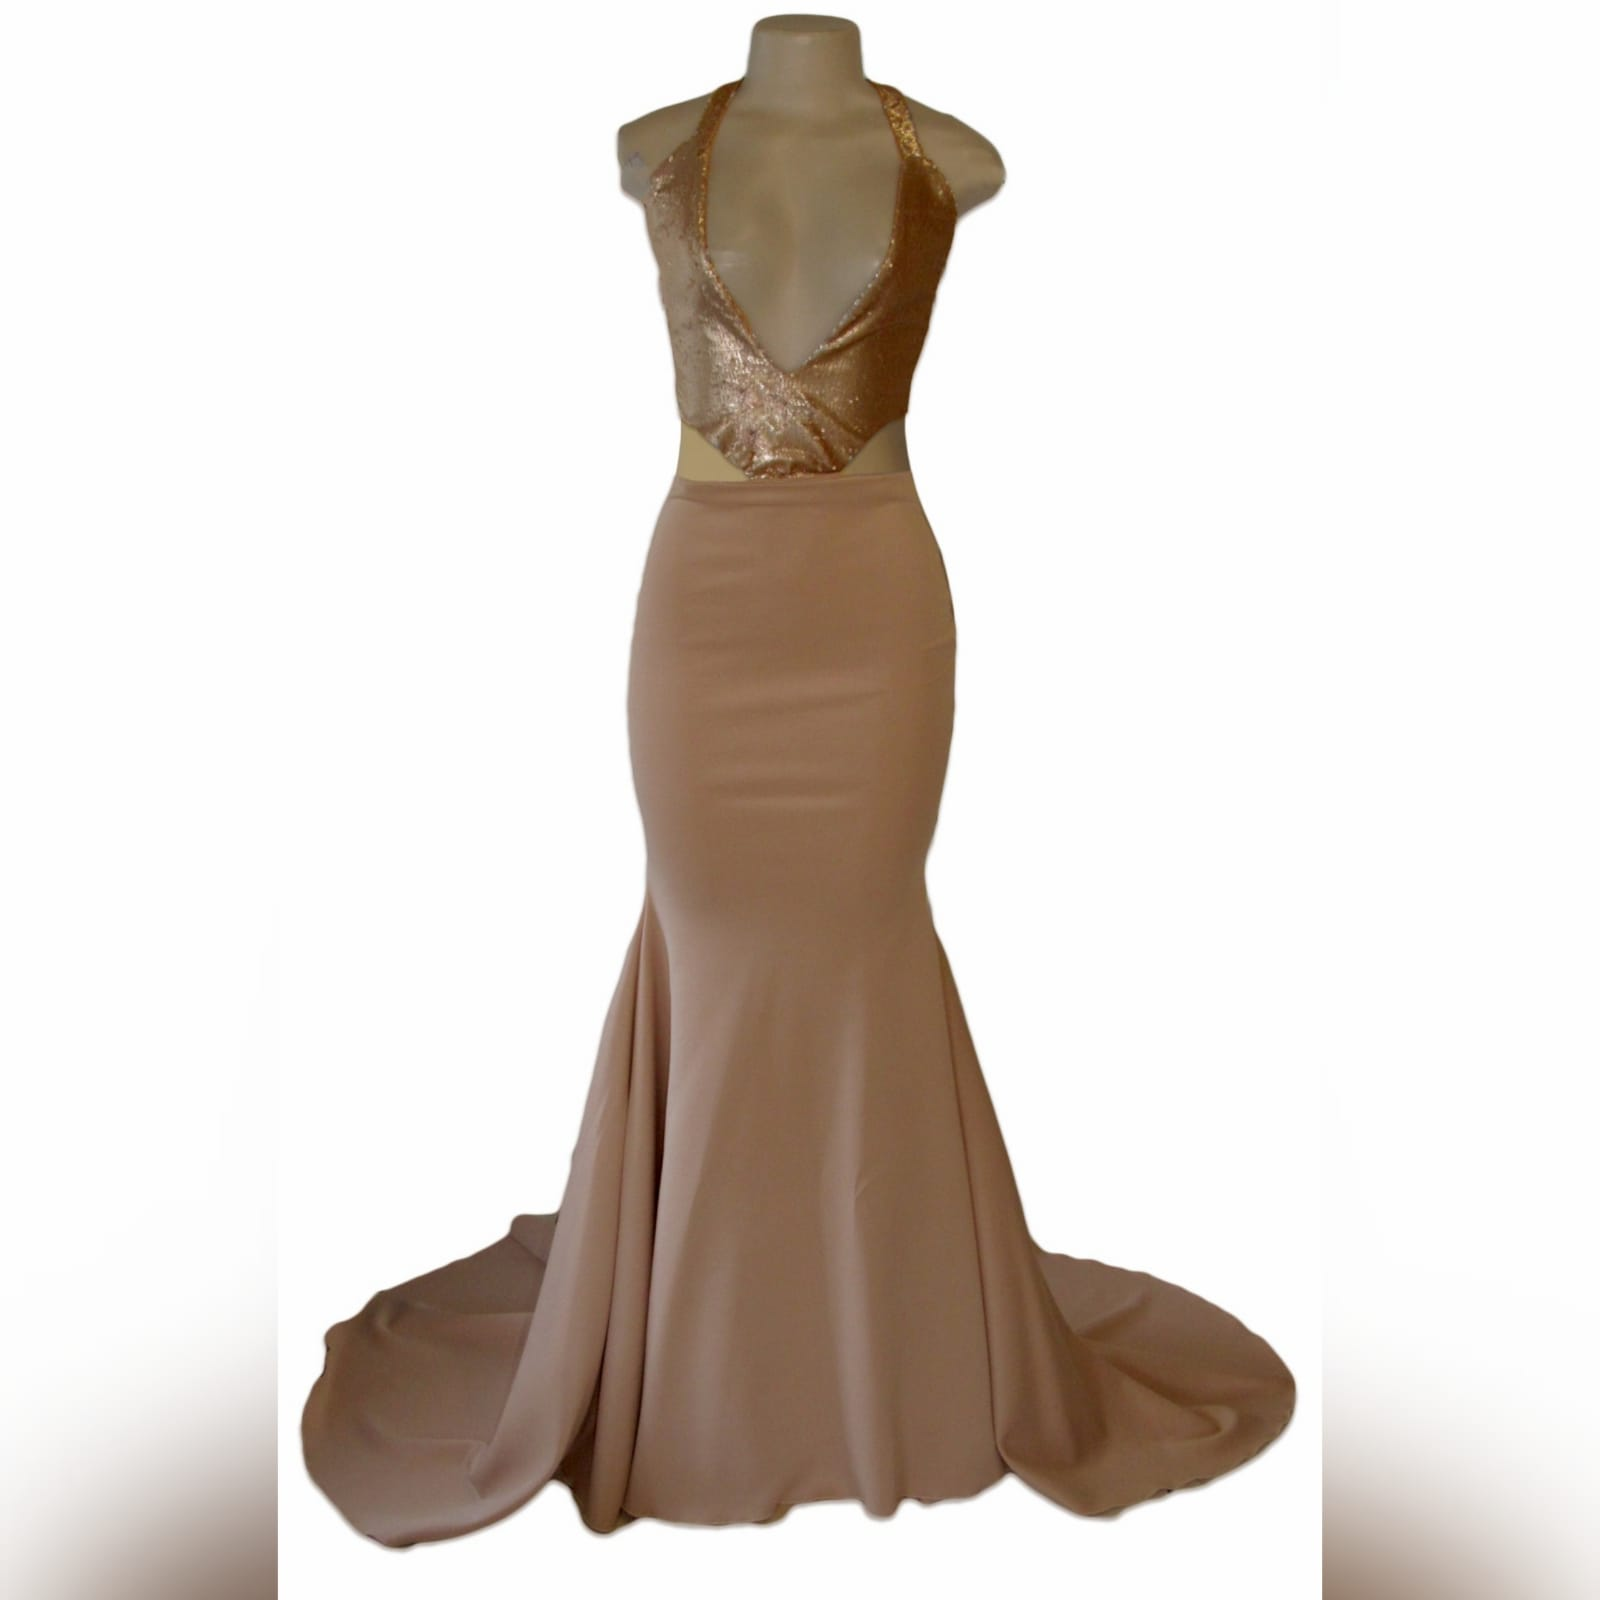 Nude and gold soft mermaid prom dress 4 nude and gold soft mermaid prom dress. Bodice in sequins with a plunging neckline and a naked back detailed with straps. Bottom with a long wide train.